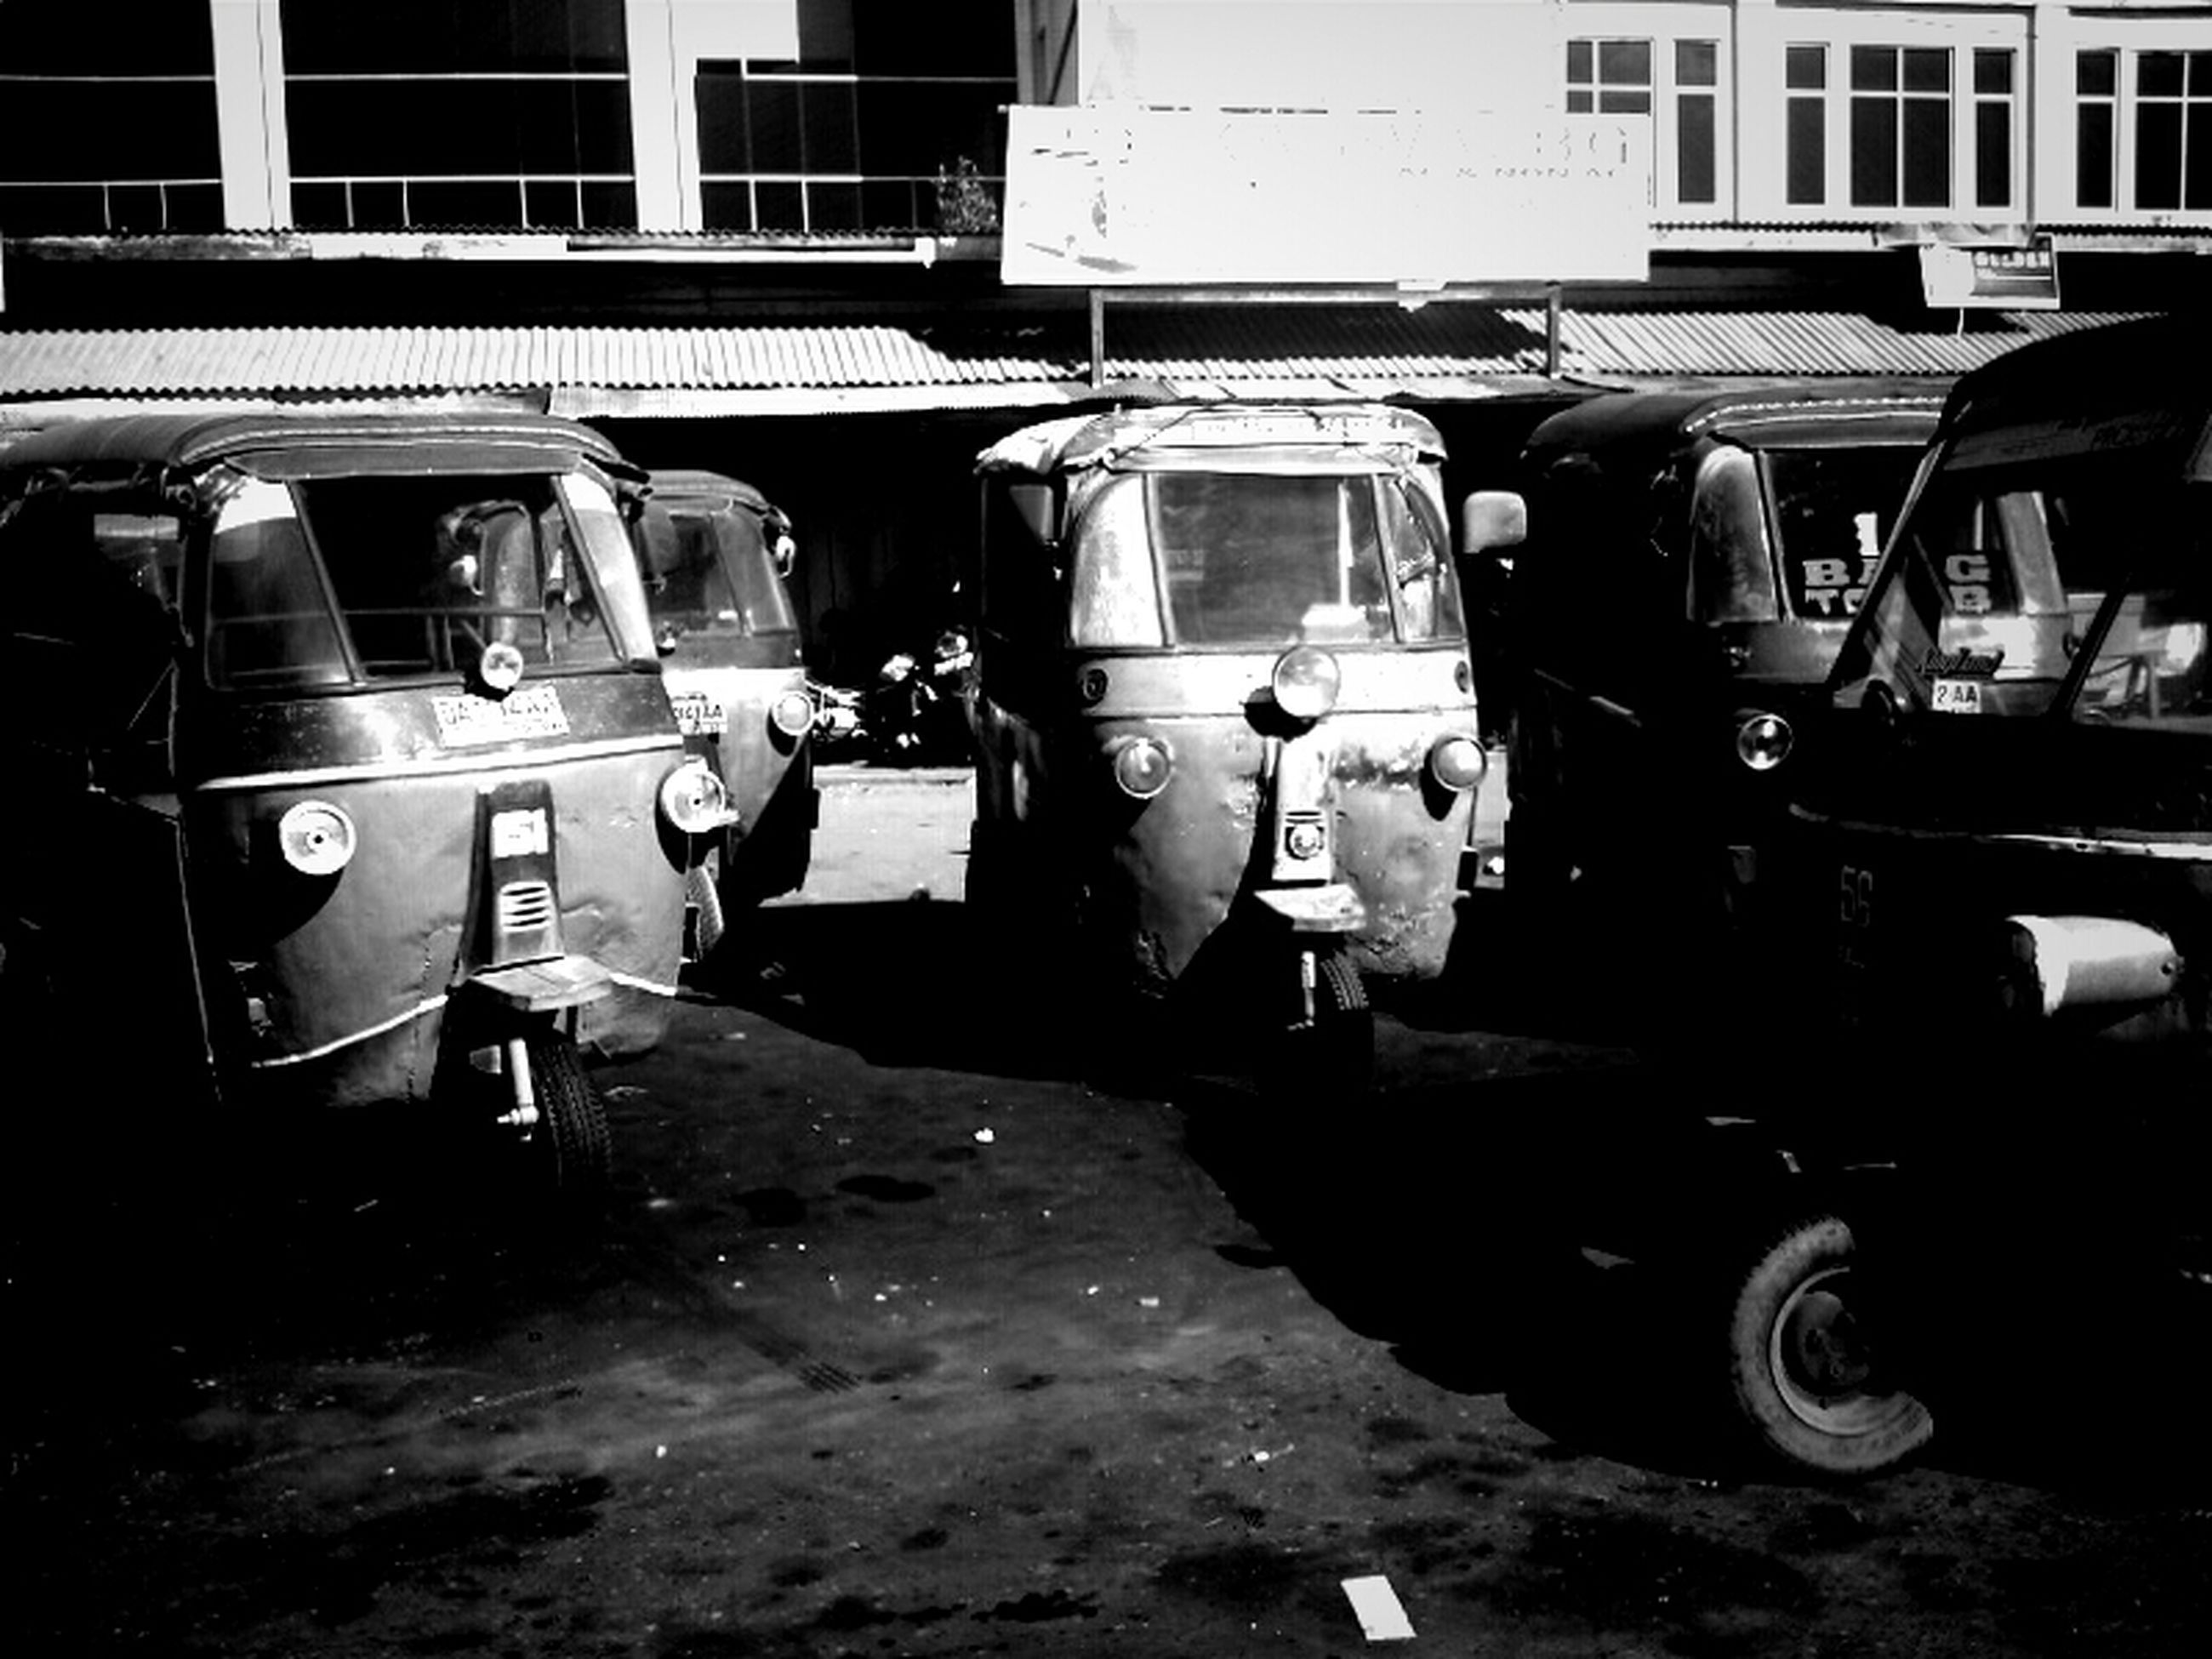 transportation, mode of transport, building exterior, land vehicle, architecture, built structure, street, car, stationary, day, outdoors, window, parked, in a row, building, parking, abandoned, city, obsolete, old